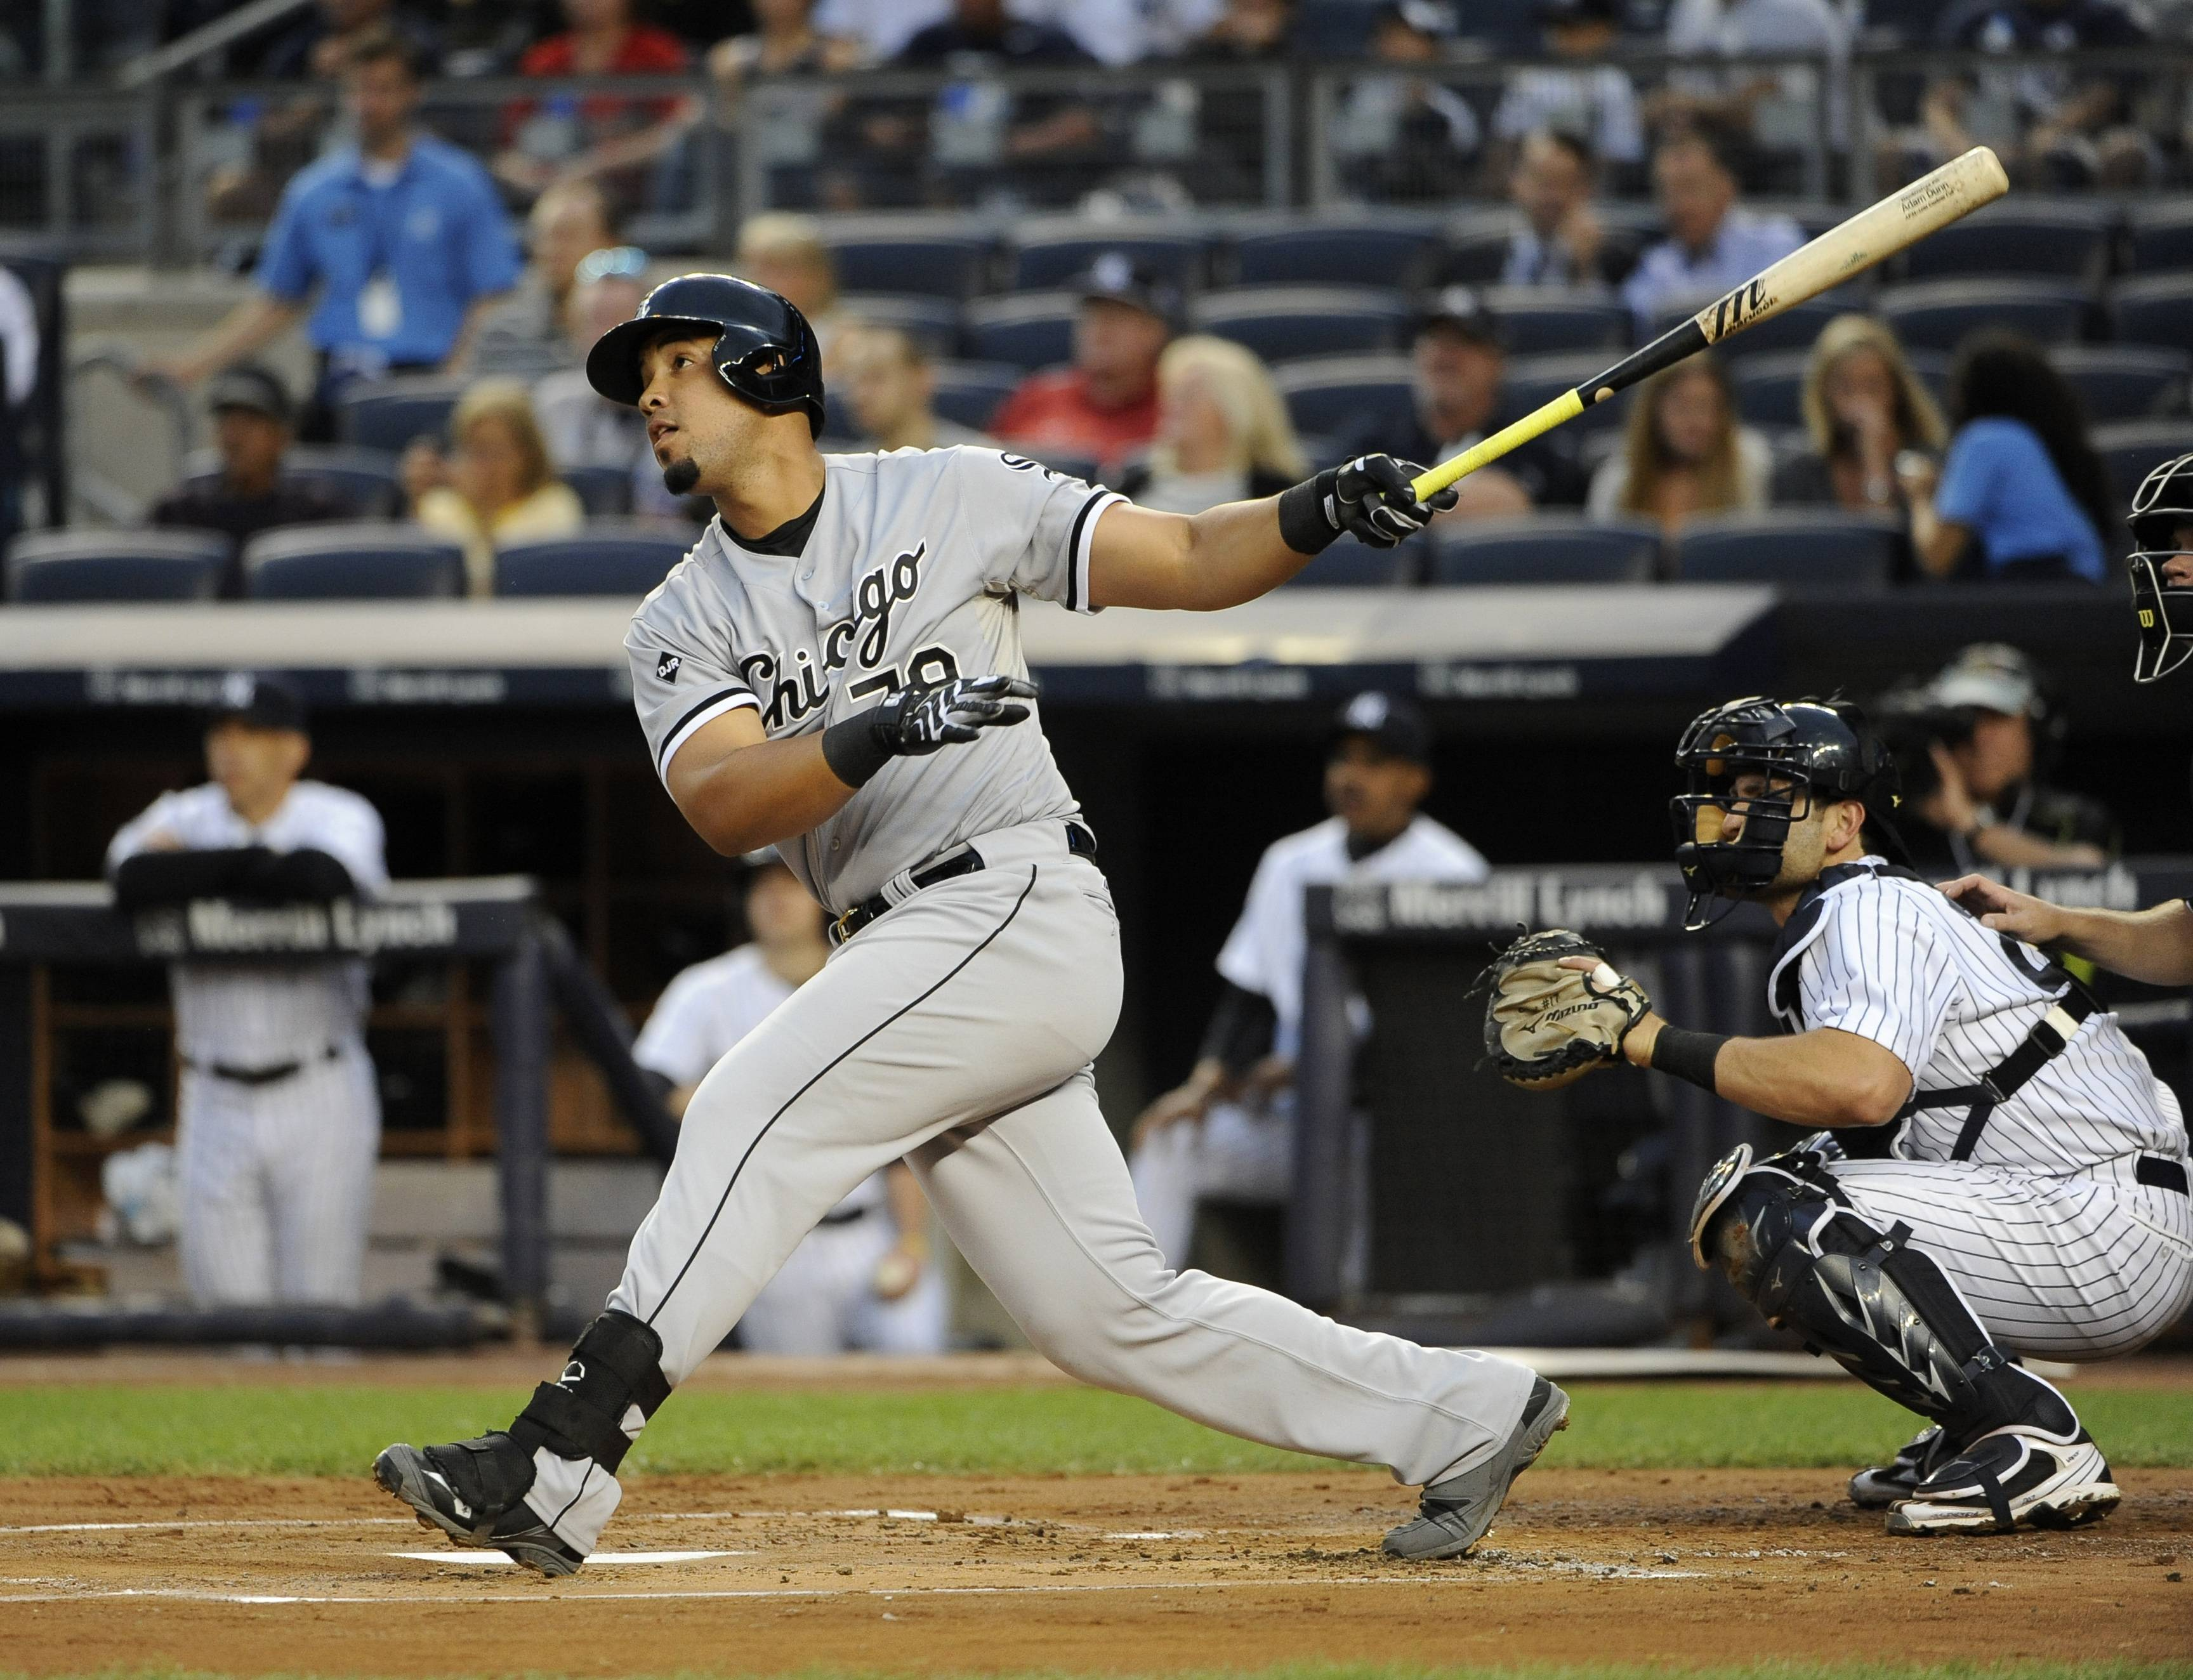 Chicago White Sox's Jose Abreu watches his three-run home run off New York Yankees starting pitcher Shane Greene as Francisco Cervelli catches for the Yankees in the first inning of a baseball game at Yankee Stadium on Friday, Aug. 22, 2014, in New York. (AP Photo/Kathy Kmonicek)